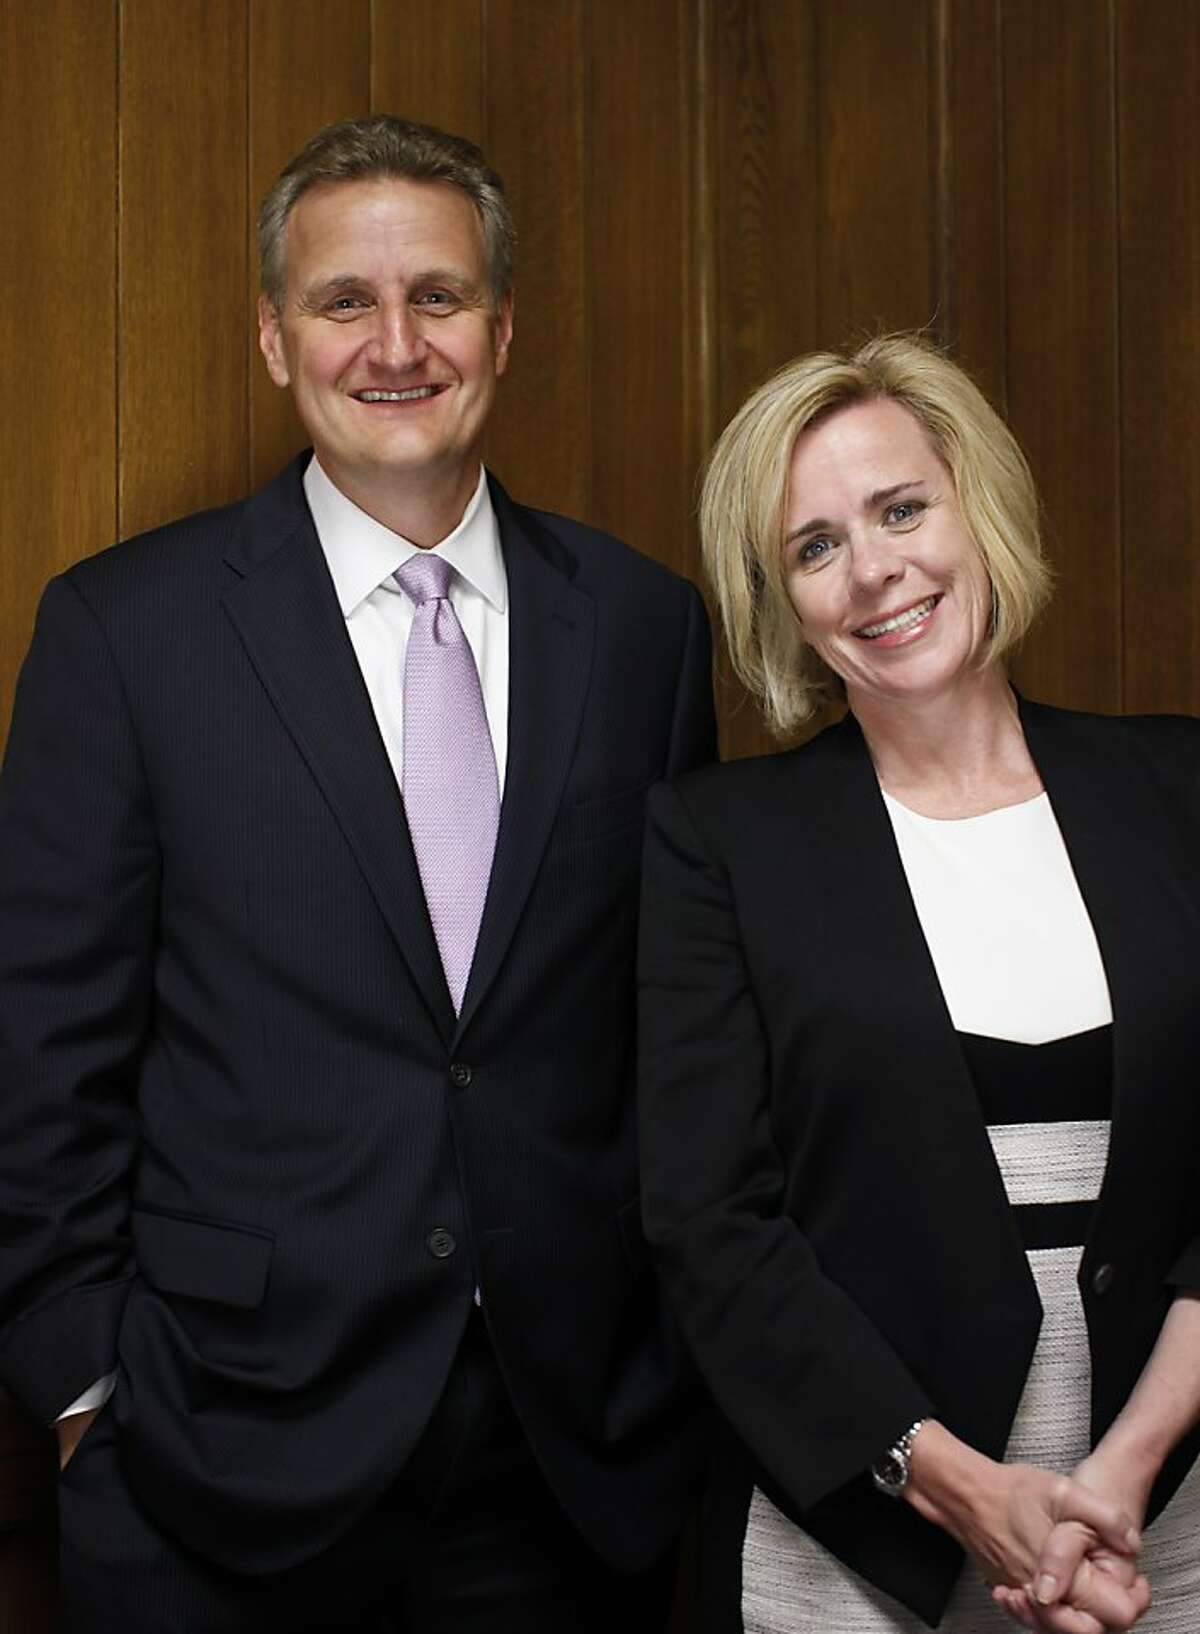 Jeffrey M. Johnson, the newly named publisher of the San Francisco Chronicle, and Joanne K. Bradford, the newly named president of the San Francisco Chronicle, are seen on Thursday, May 23, 2013 in San Francisco, Calif.